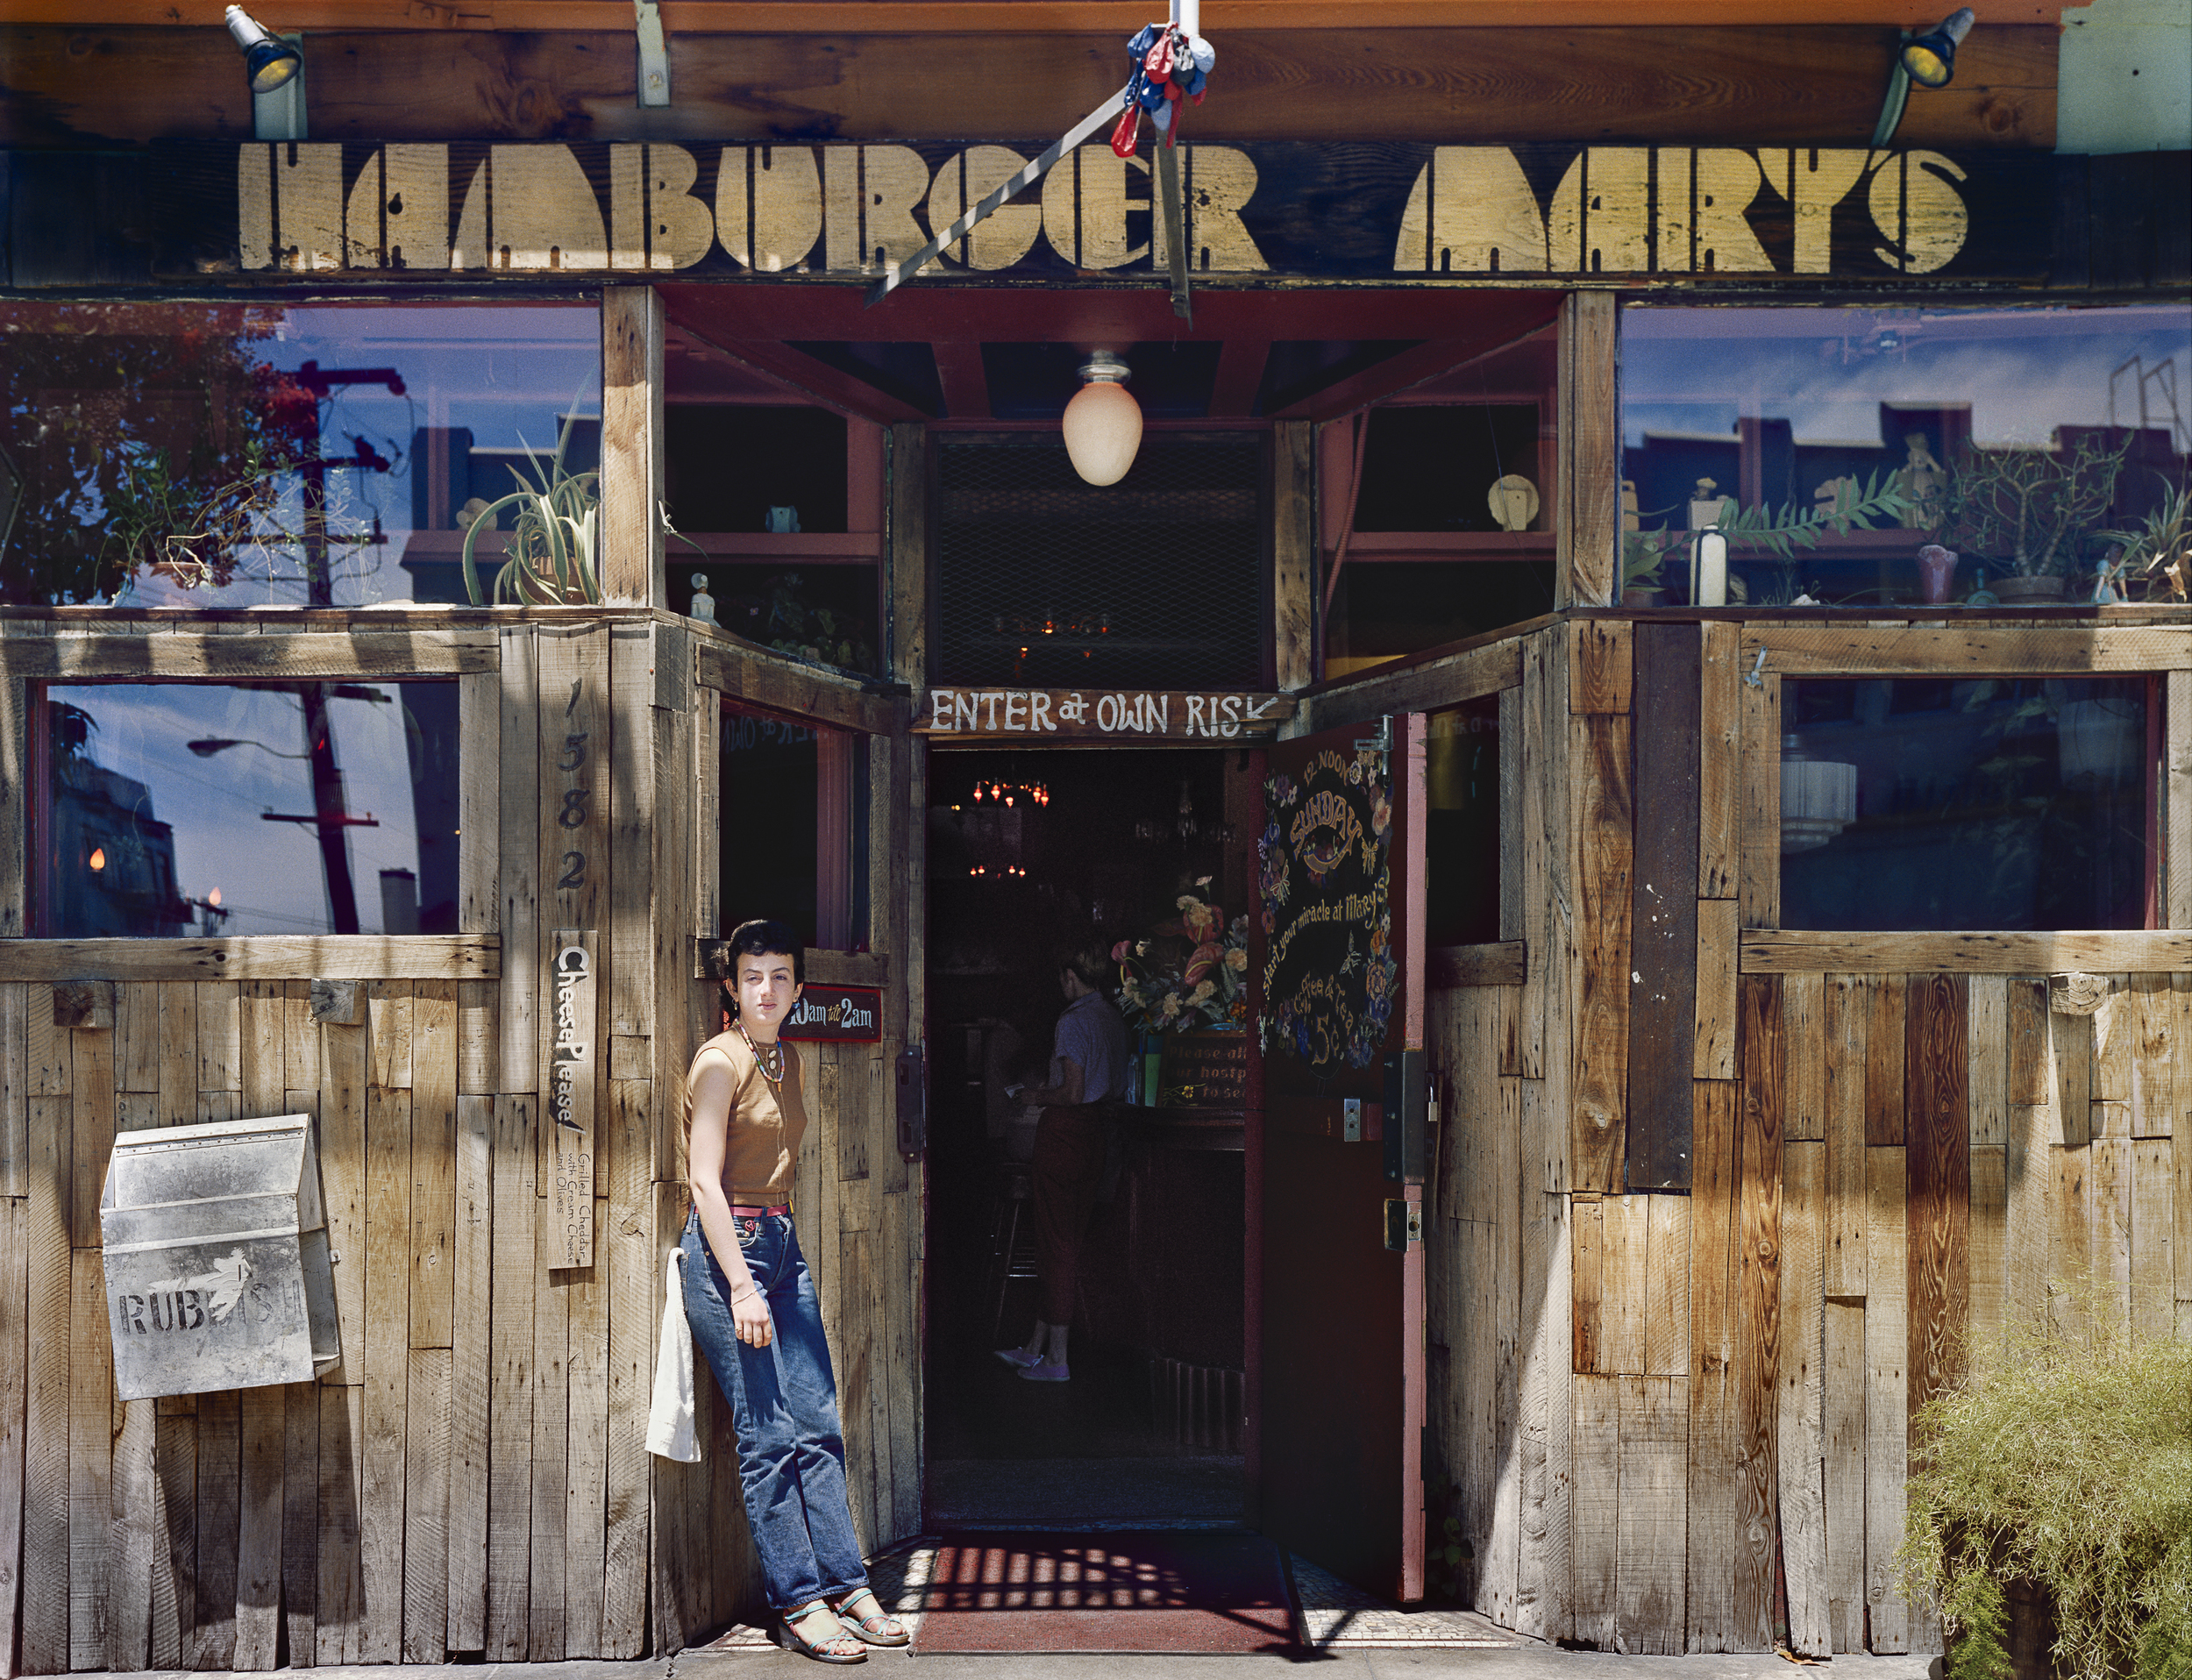 Hamburger Mary's, 1582 Folsom at 12th Street, 1980 Archival Pigment Print, 2016 16 x 20 inches, edition of 5 20 x 24 inches, edition of 2 30 x 40 inches, edition of 2